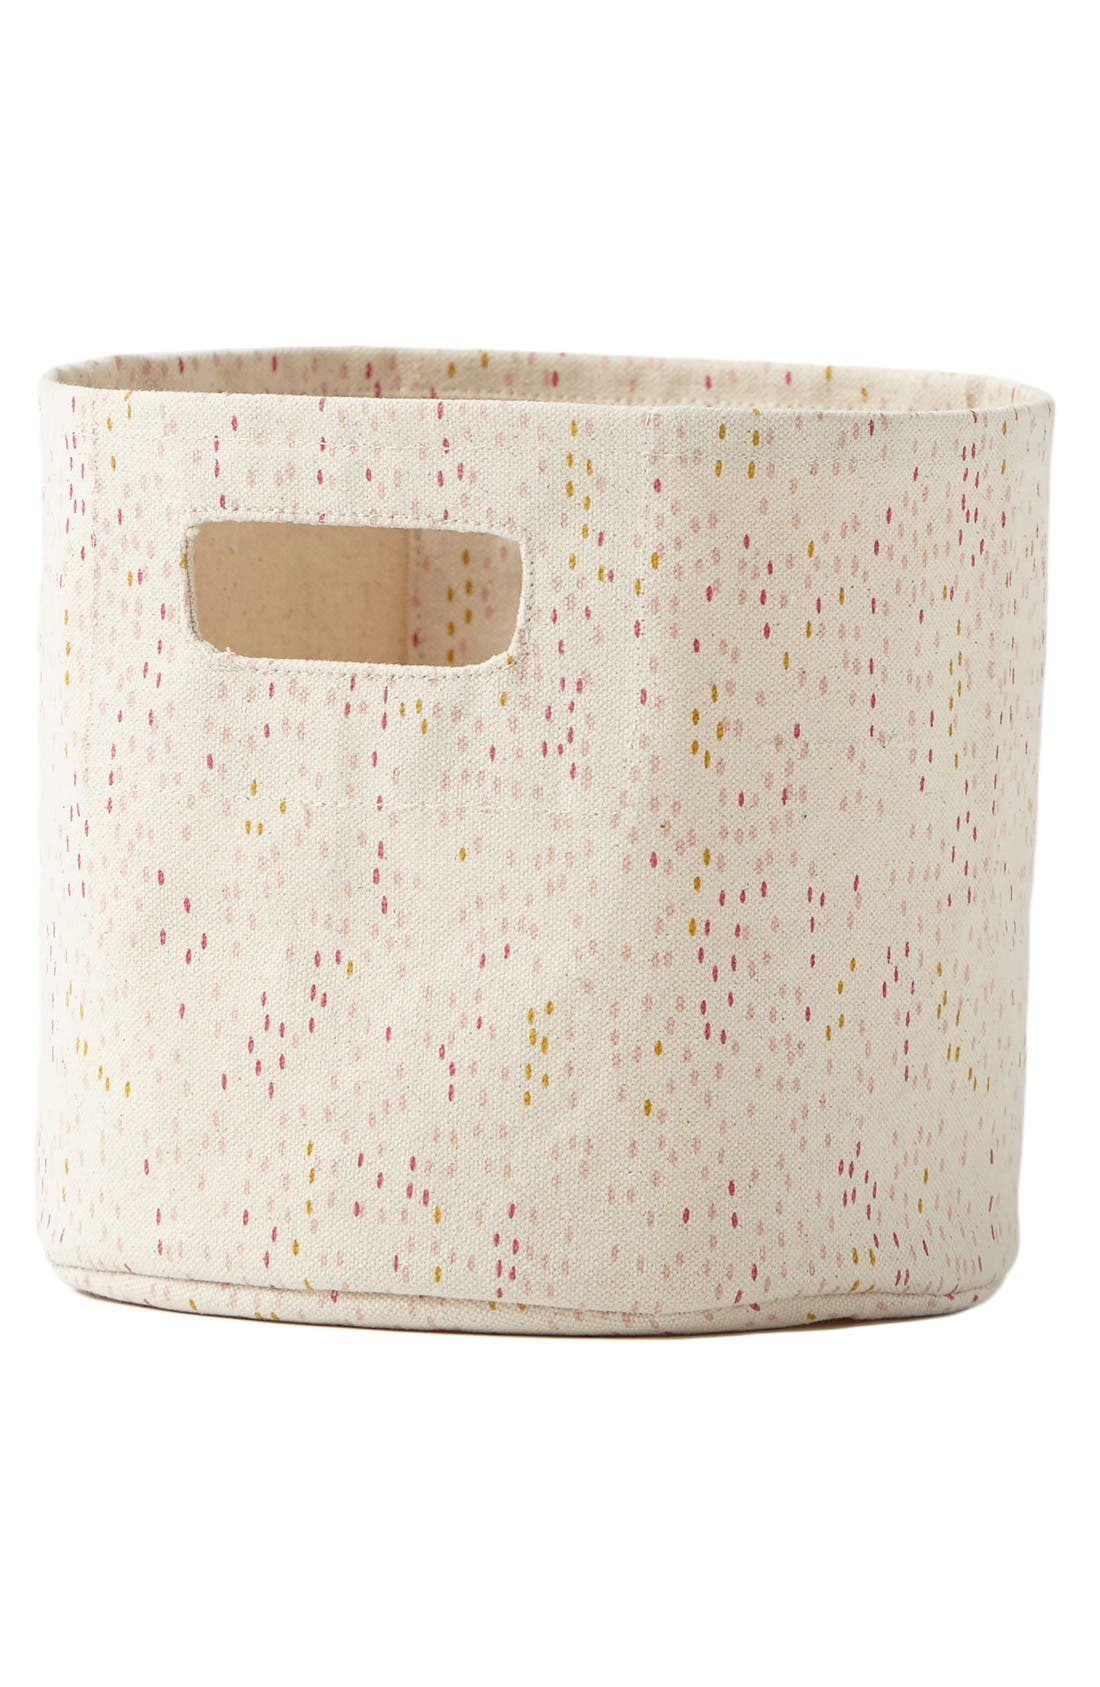 Showers Mini Canvas Bin,                         Main,                         color, Pink